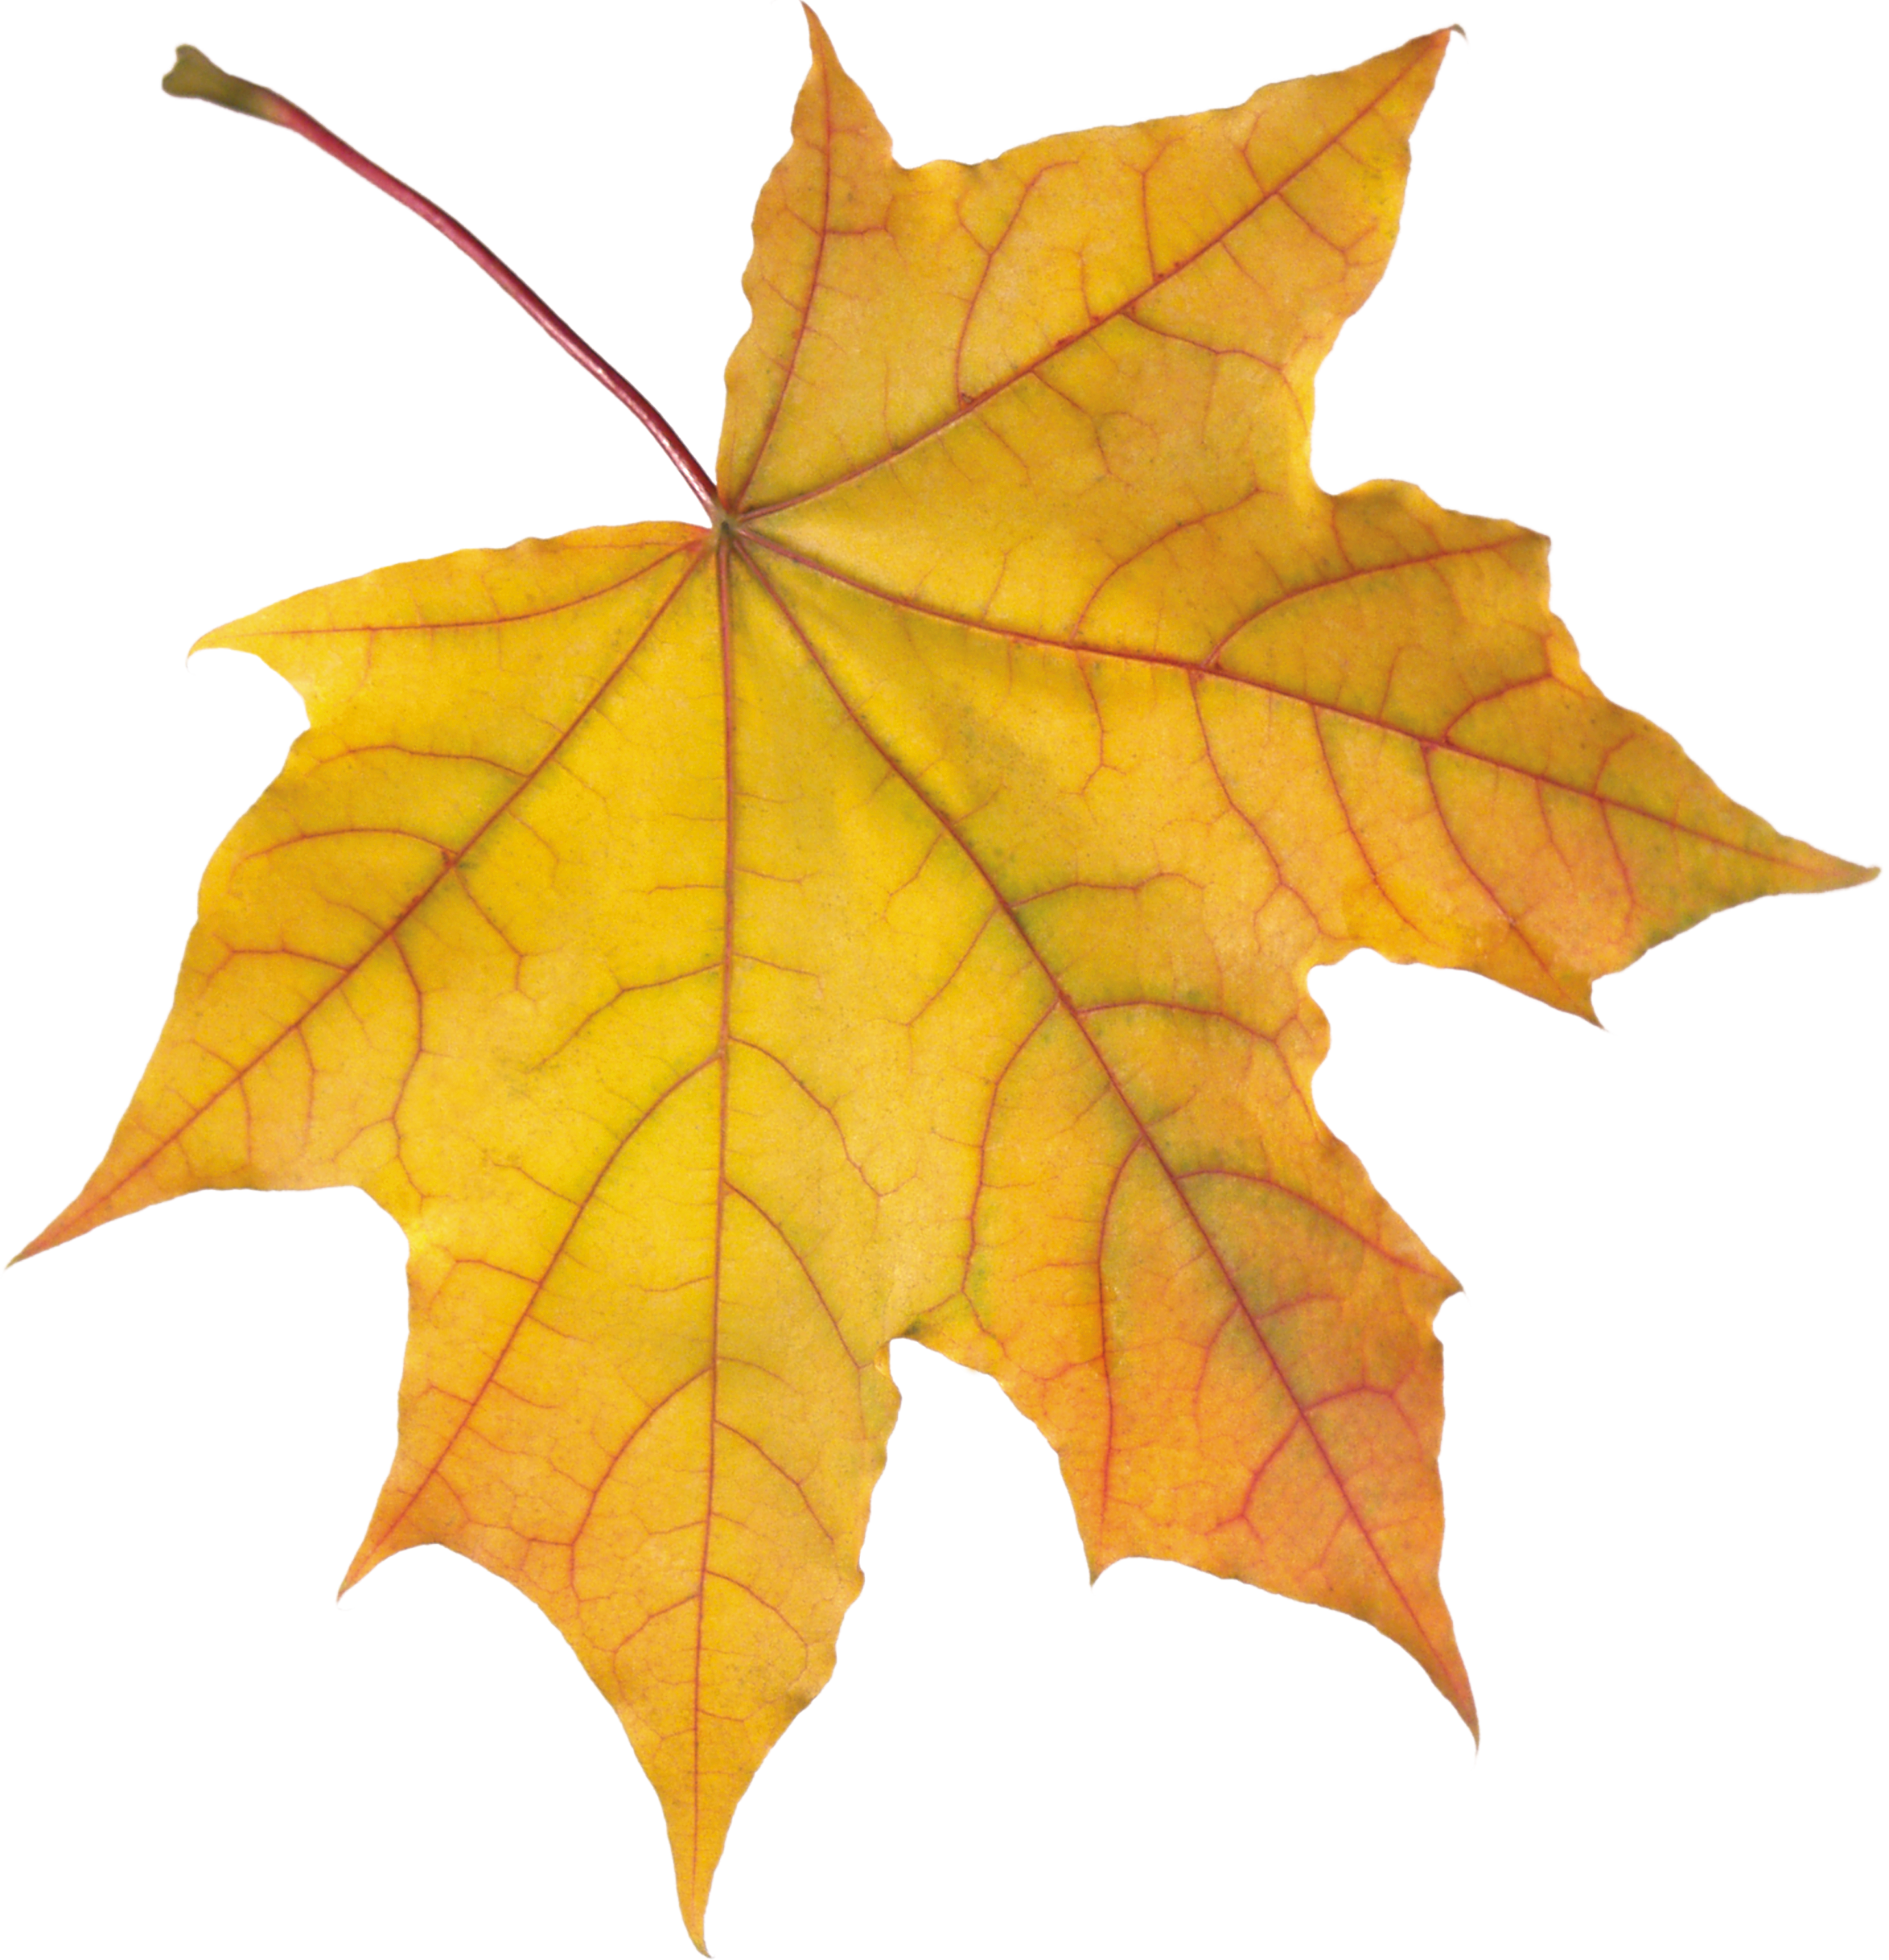 yellow autumn leaf png image purepng free transparent fallen leaves clip art falling leaves clip art animated gif